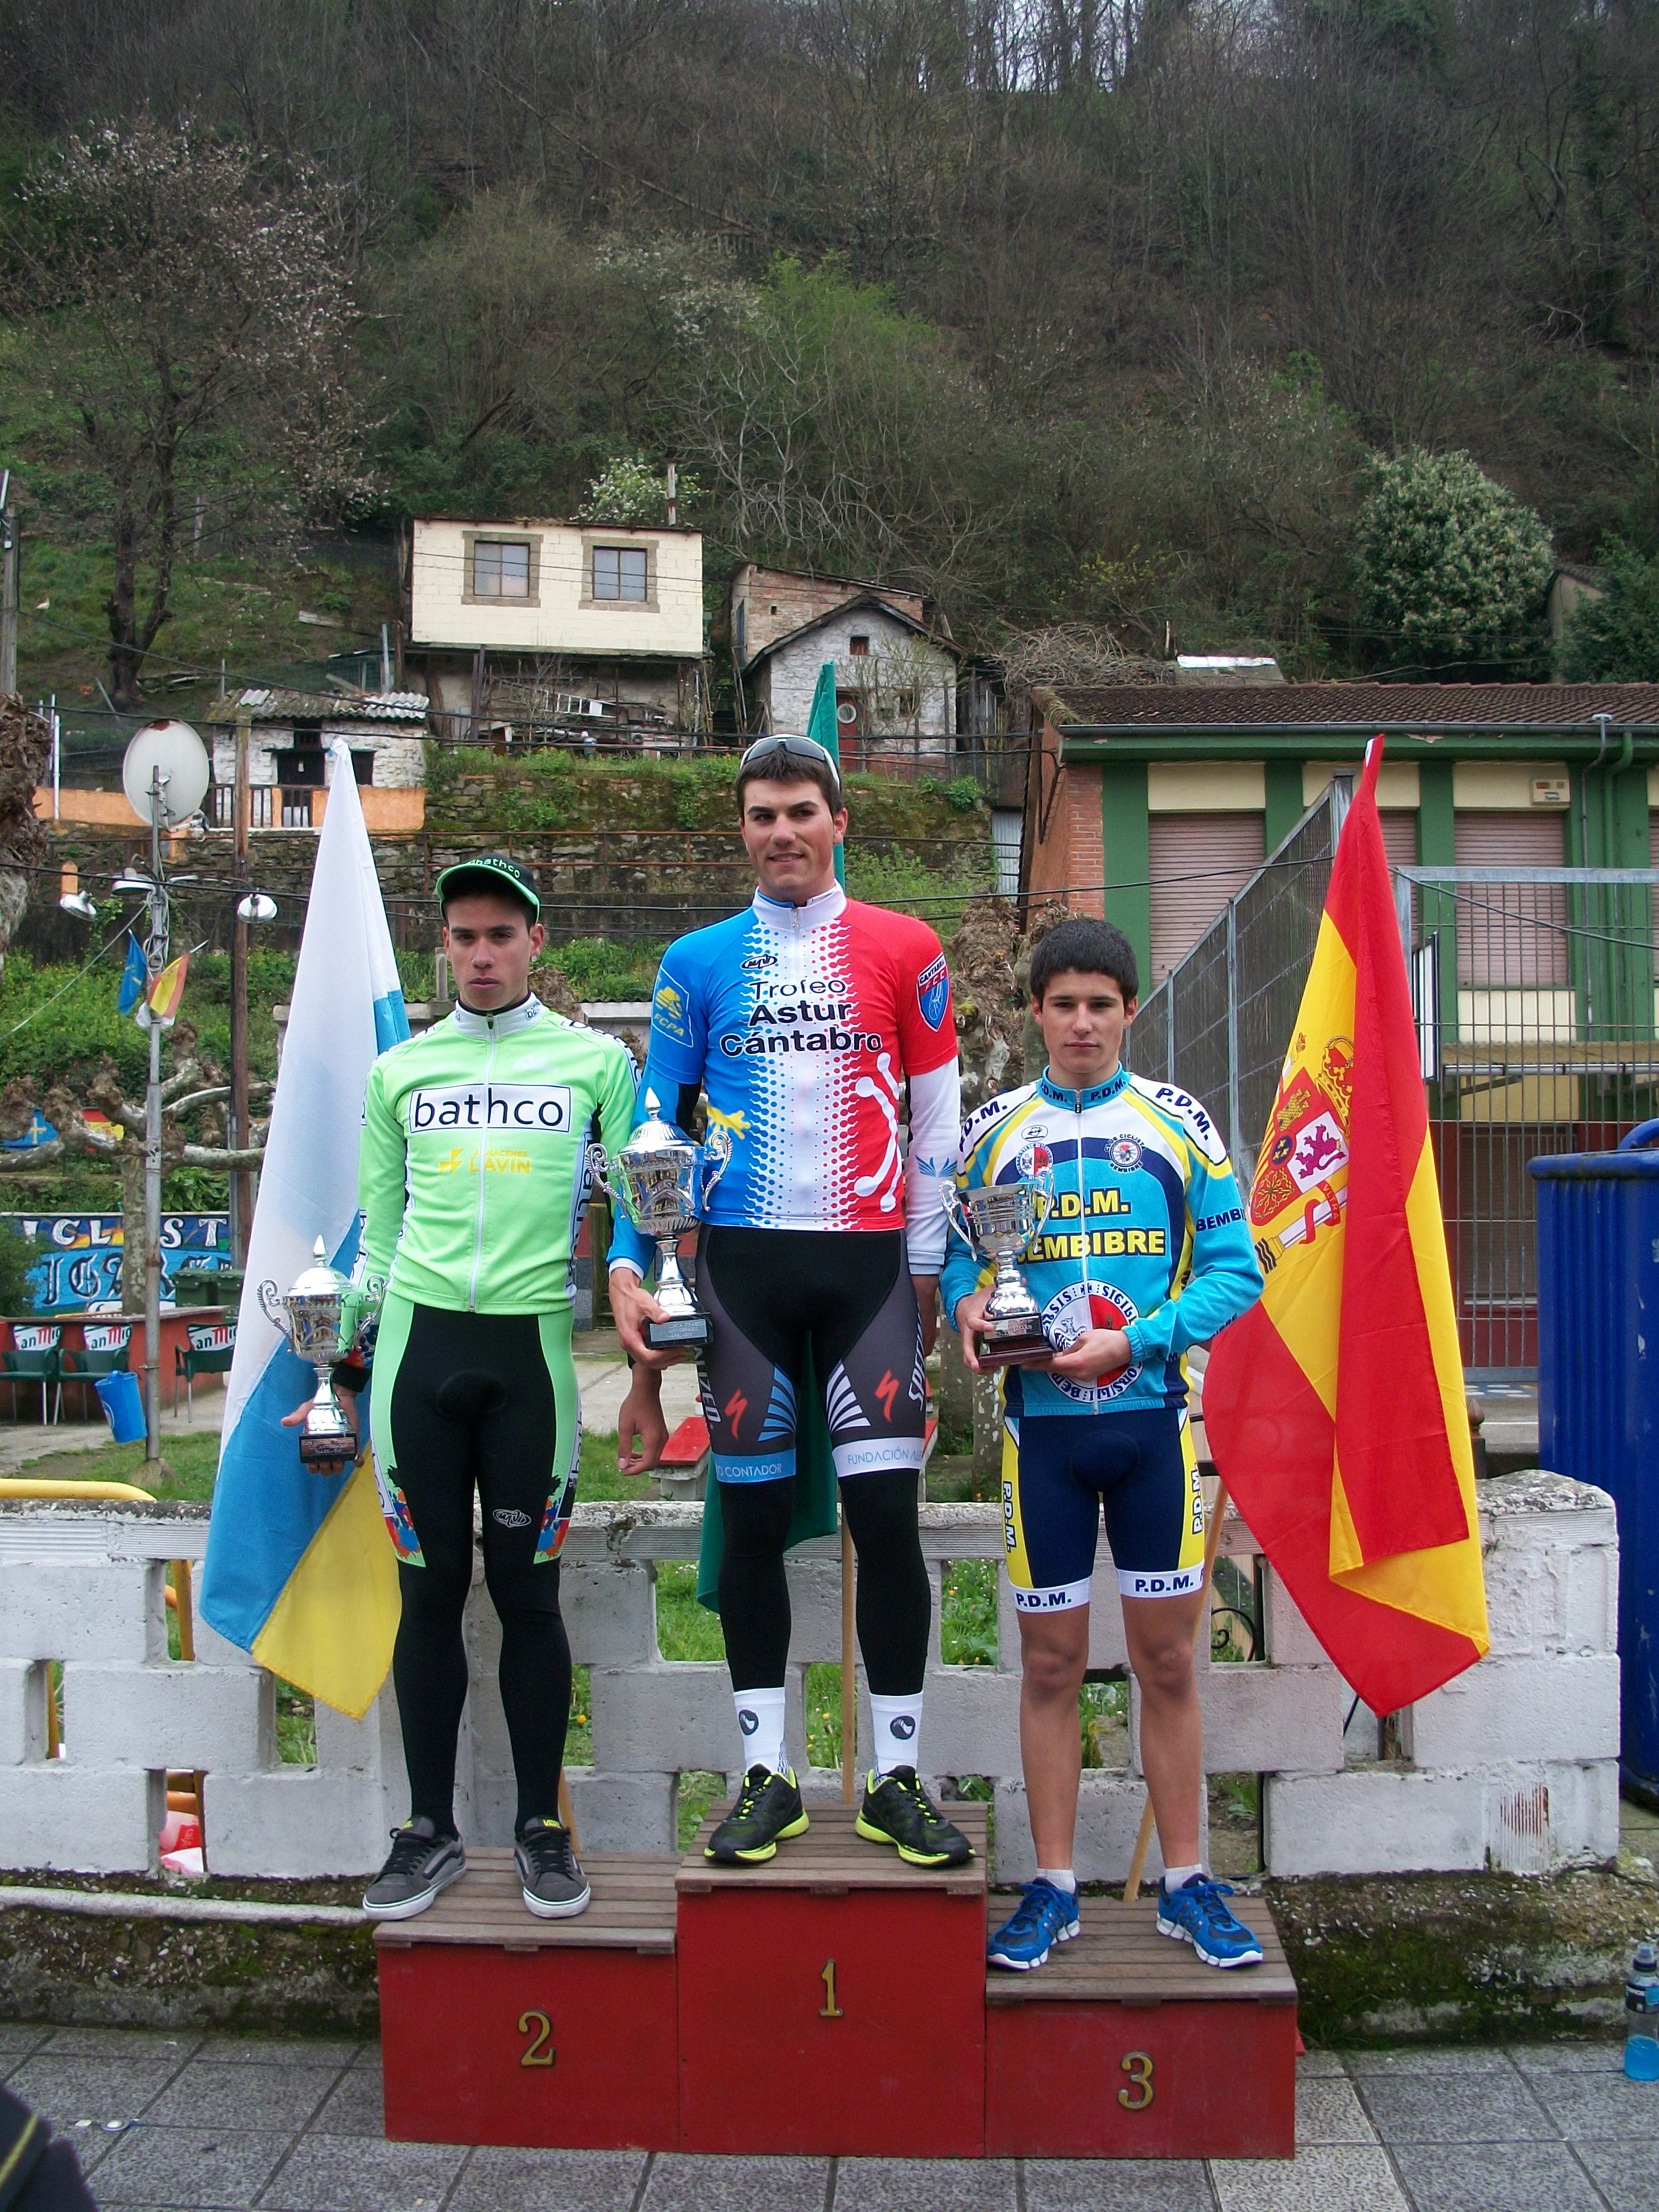 THE BATHCO LIDERA TROFEO ASTURCANTABRO